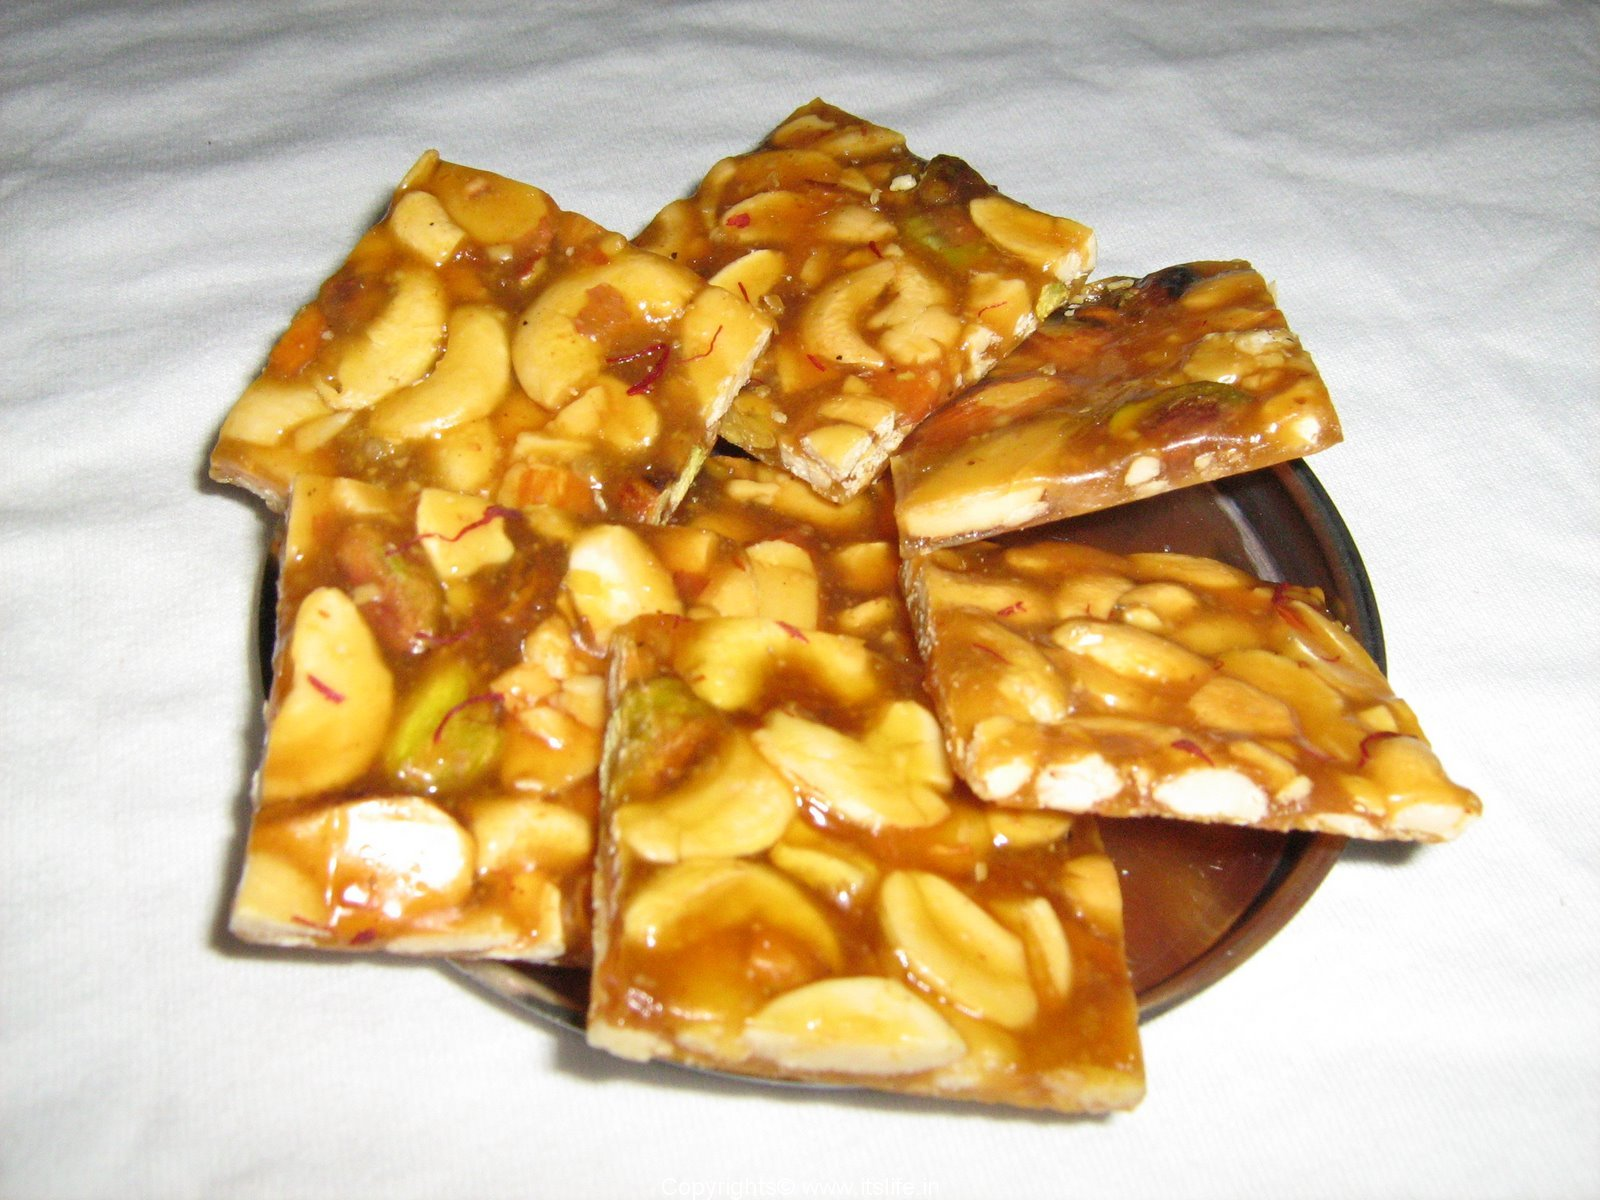 http://www.itslife.in/wp-content/gallery/recipes-desserts/recipe-deserts-dry-fruit-chikki.jpg vspace5